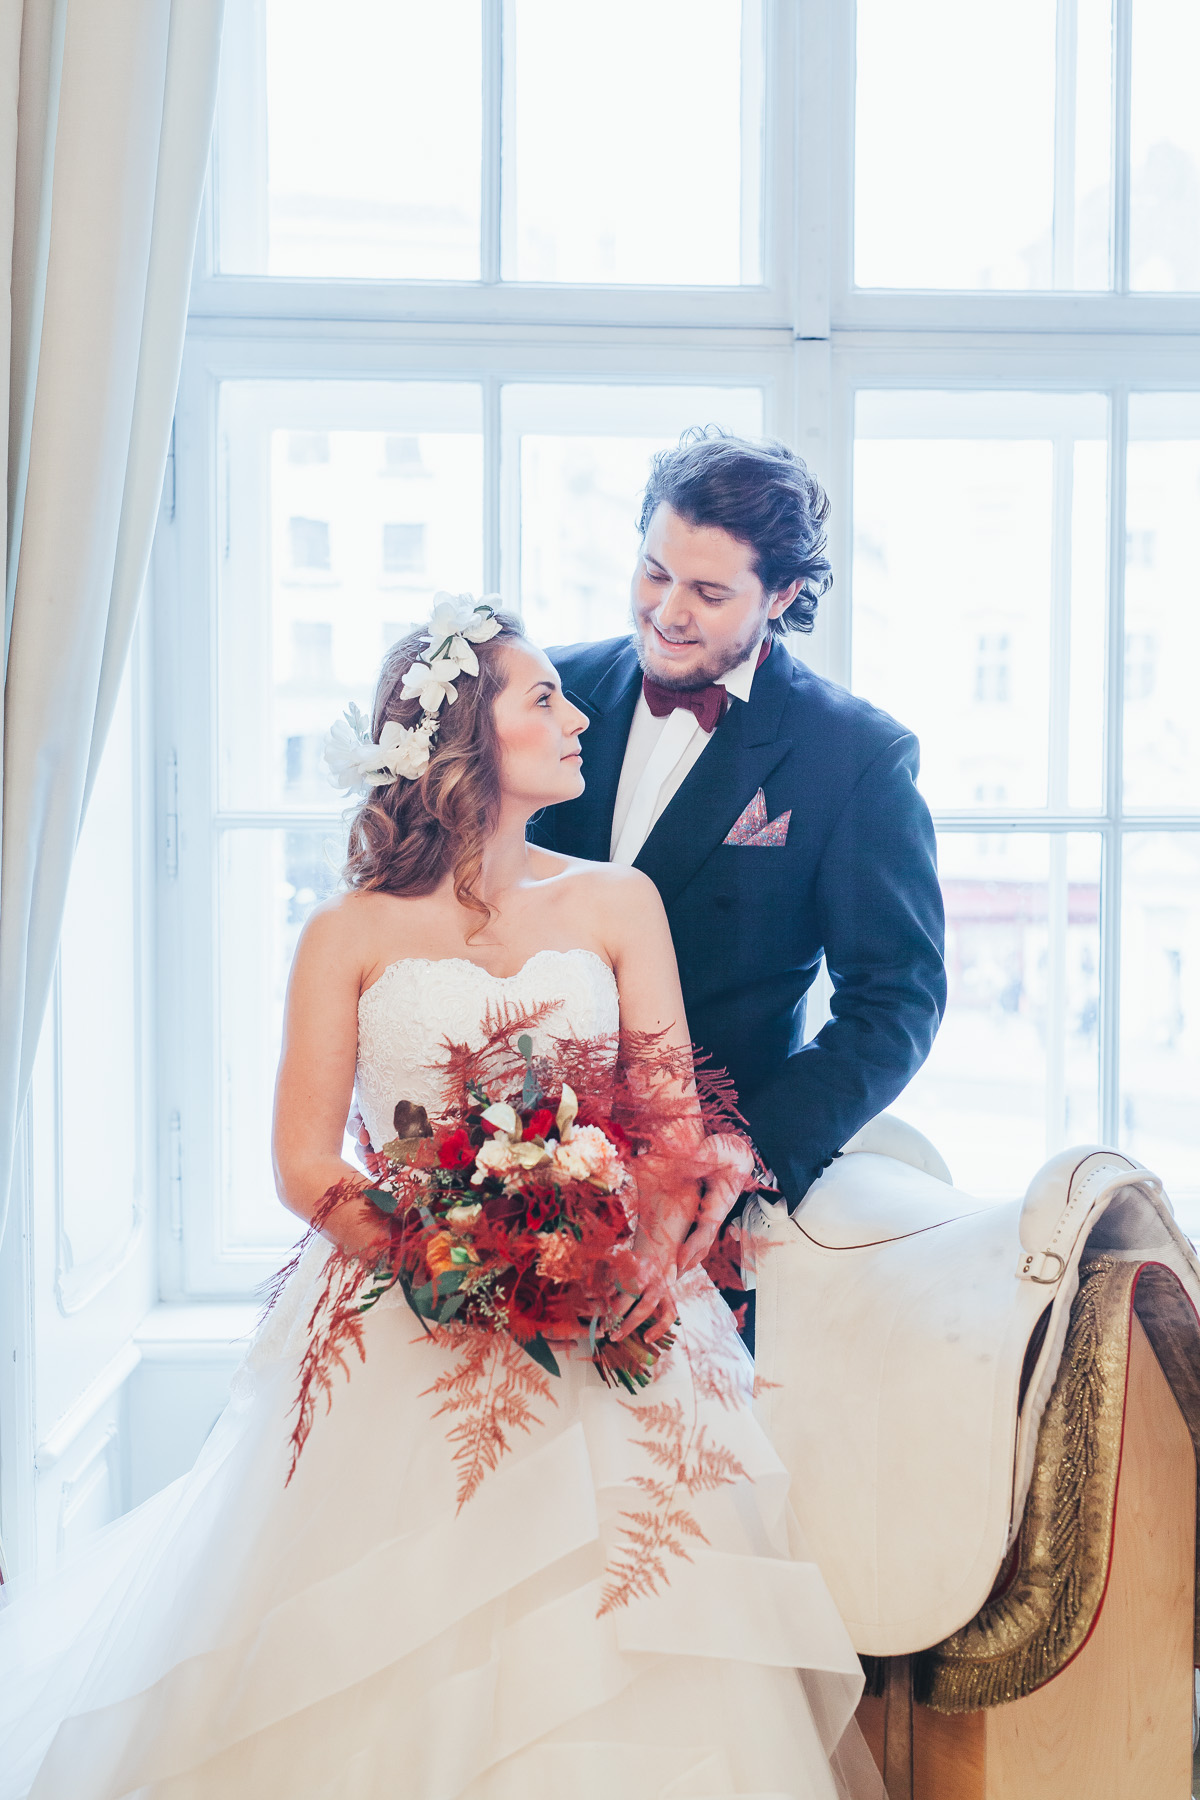 Styled shoot with a horse Metamorphoses by luxury destination wedding planner High Emotion Weddings at the Spanish Riding School Vienna Austria